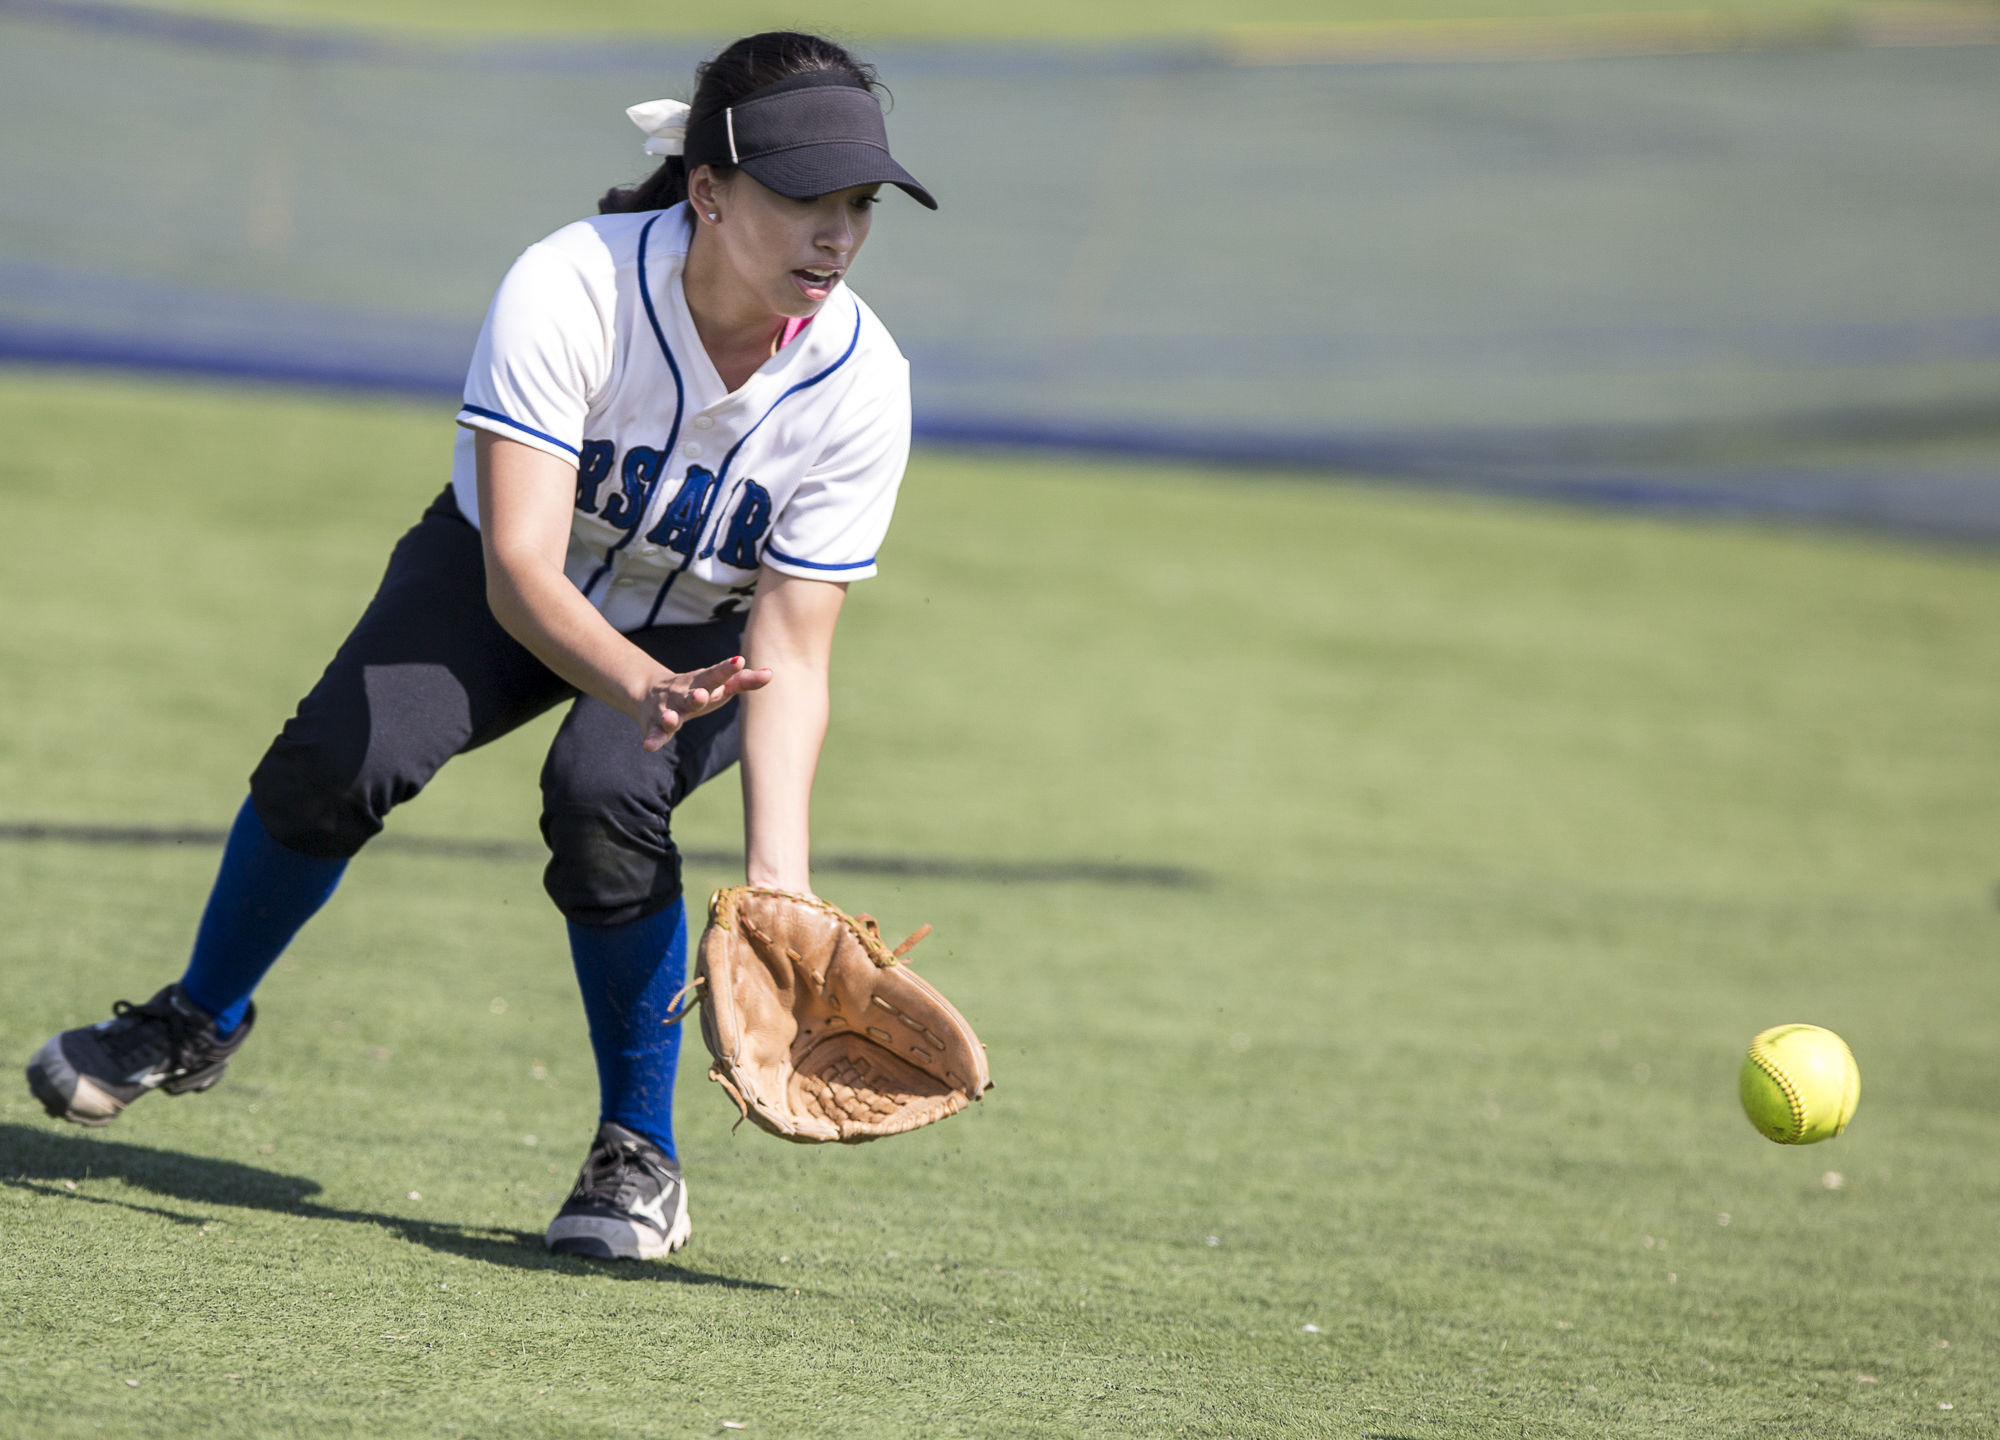 Santa Monica College Corsair freshman out-fielder Ashley Nava prepares to field the ball and throw it towards 2nd base at the bottom of the 3rd at the John Adams Middle School field in Santa Monica California, on Tuesday, April 3 2018. The Santa Monica Corsairs lost 6-5 against the Cuesta College Cougars in the ten-inning softball game. (Matthew Martin/Corsair Photo)